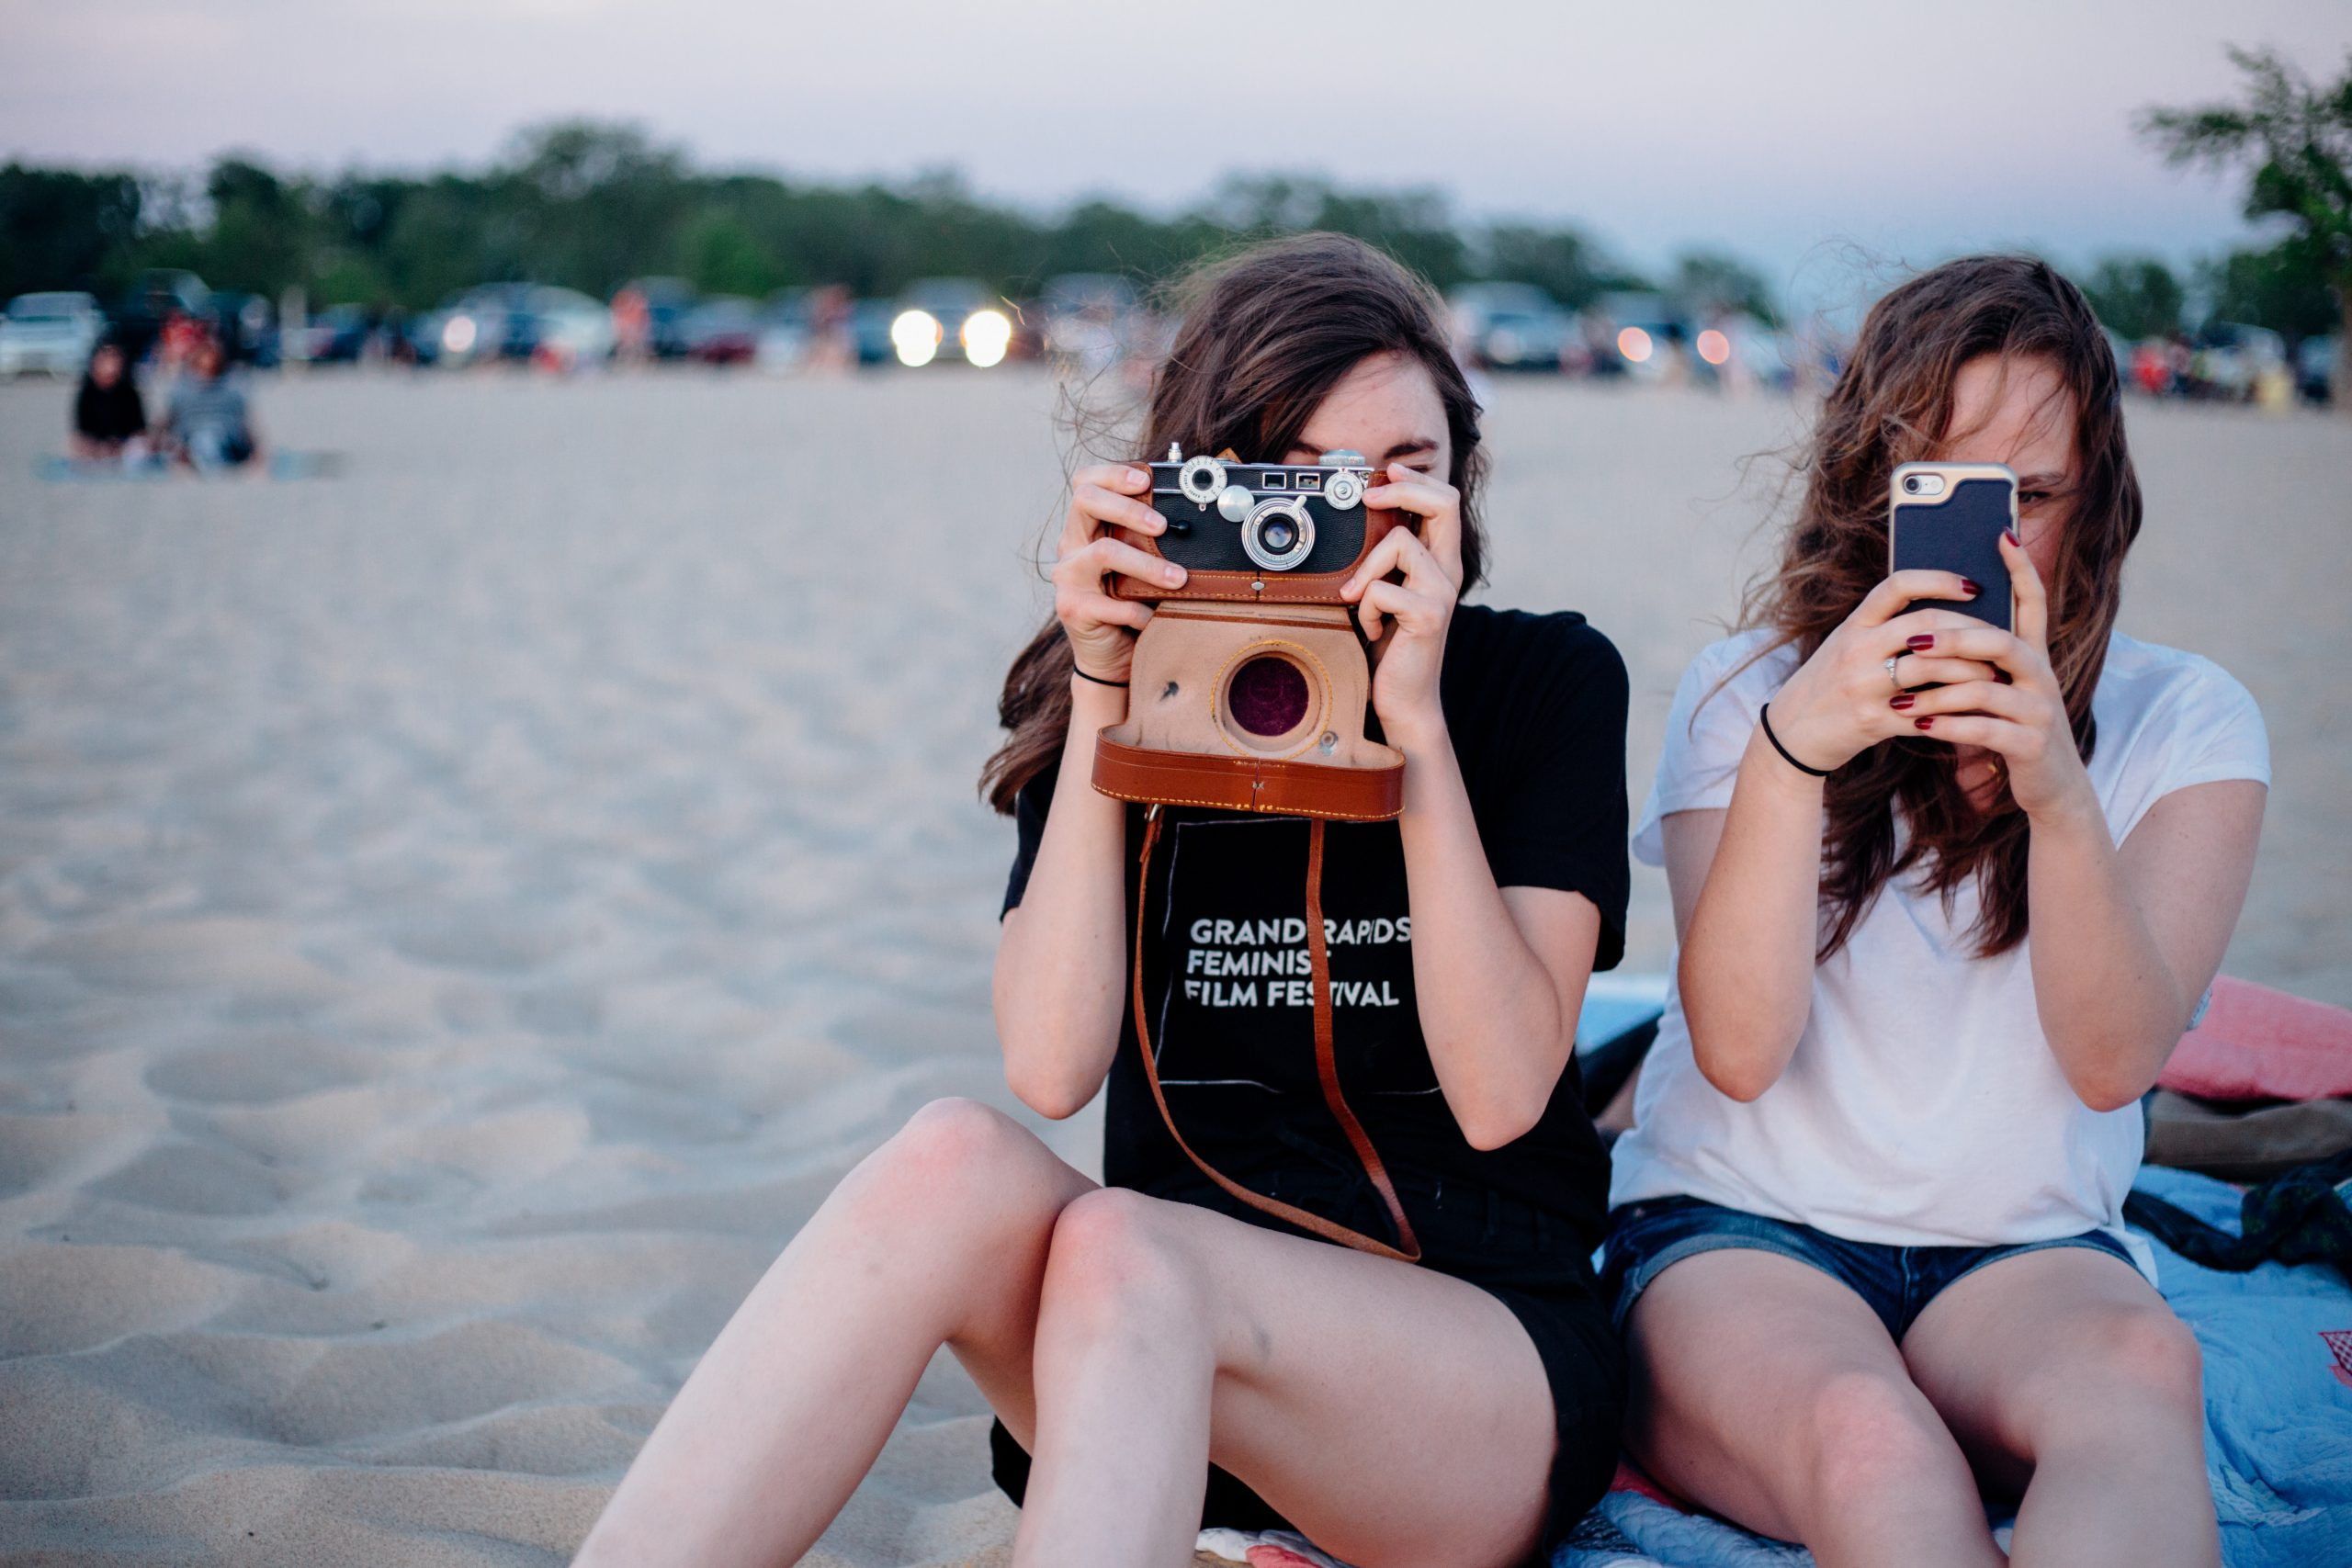 image of 18 year old girls using their cameras to take a picutre